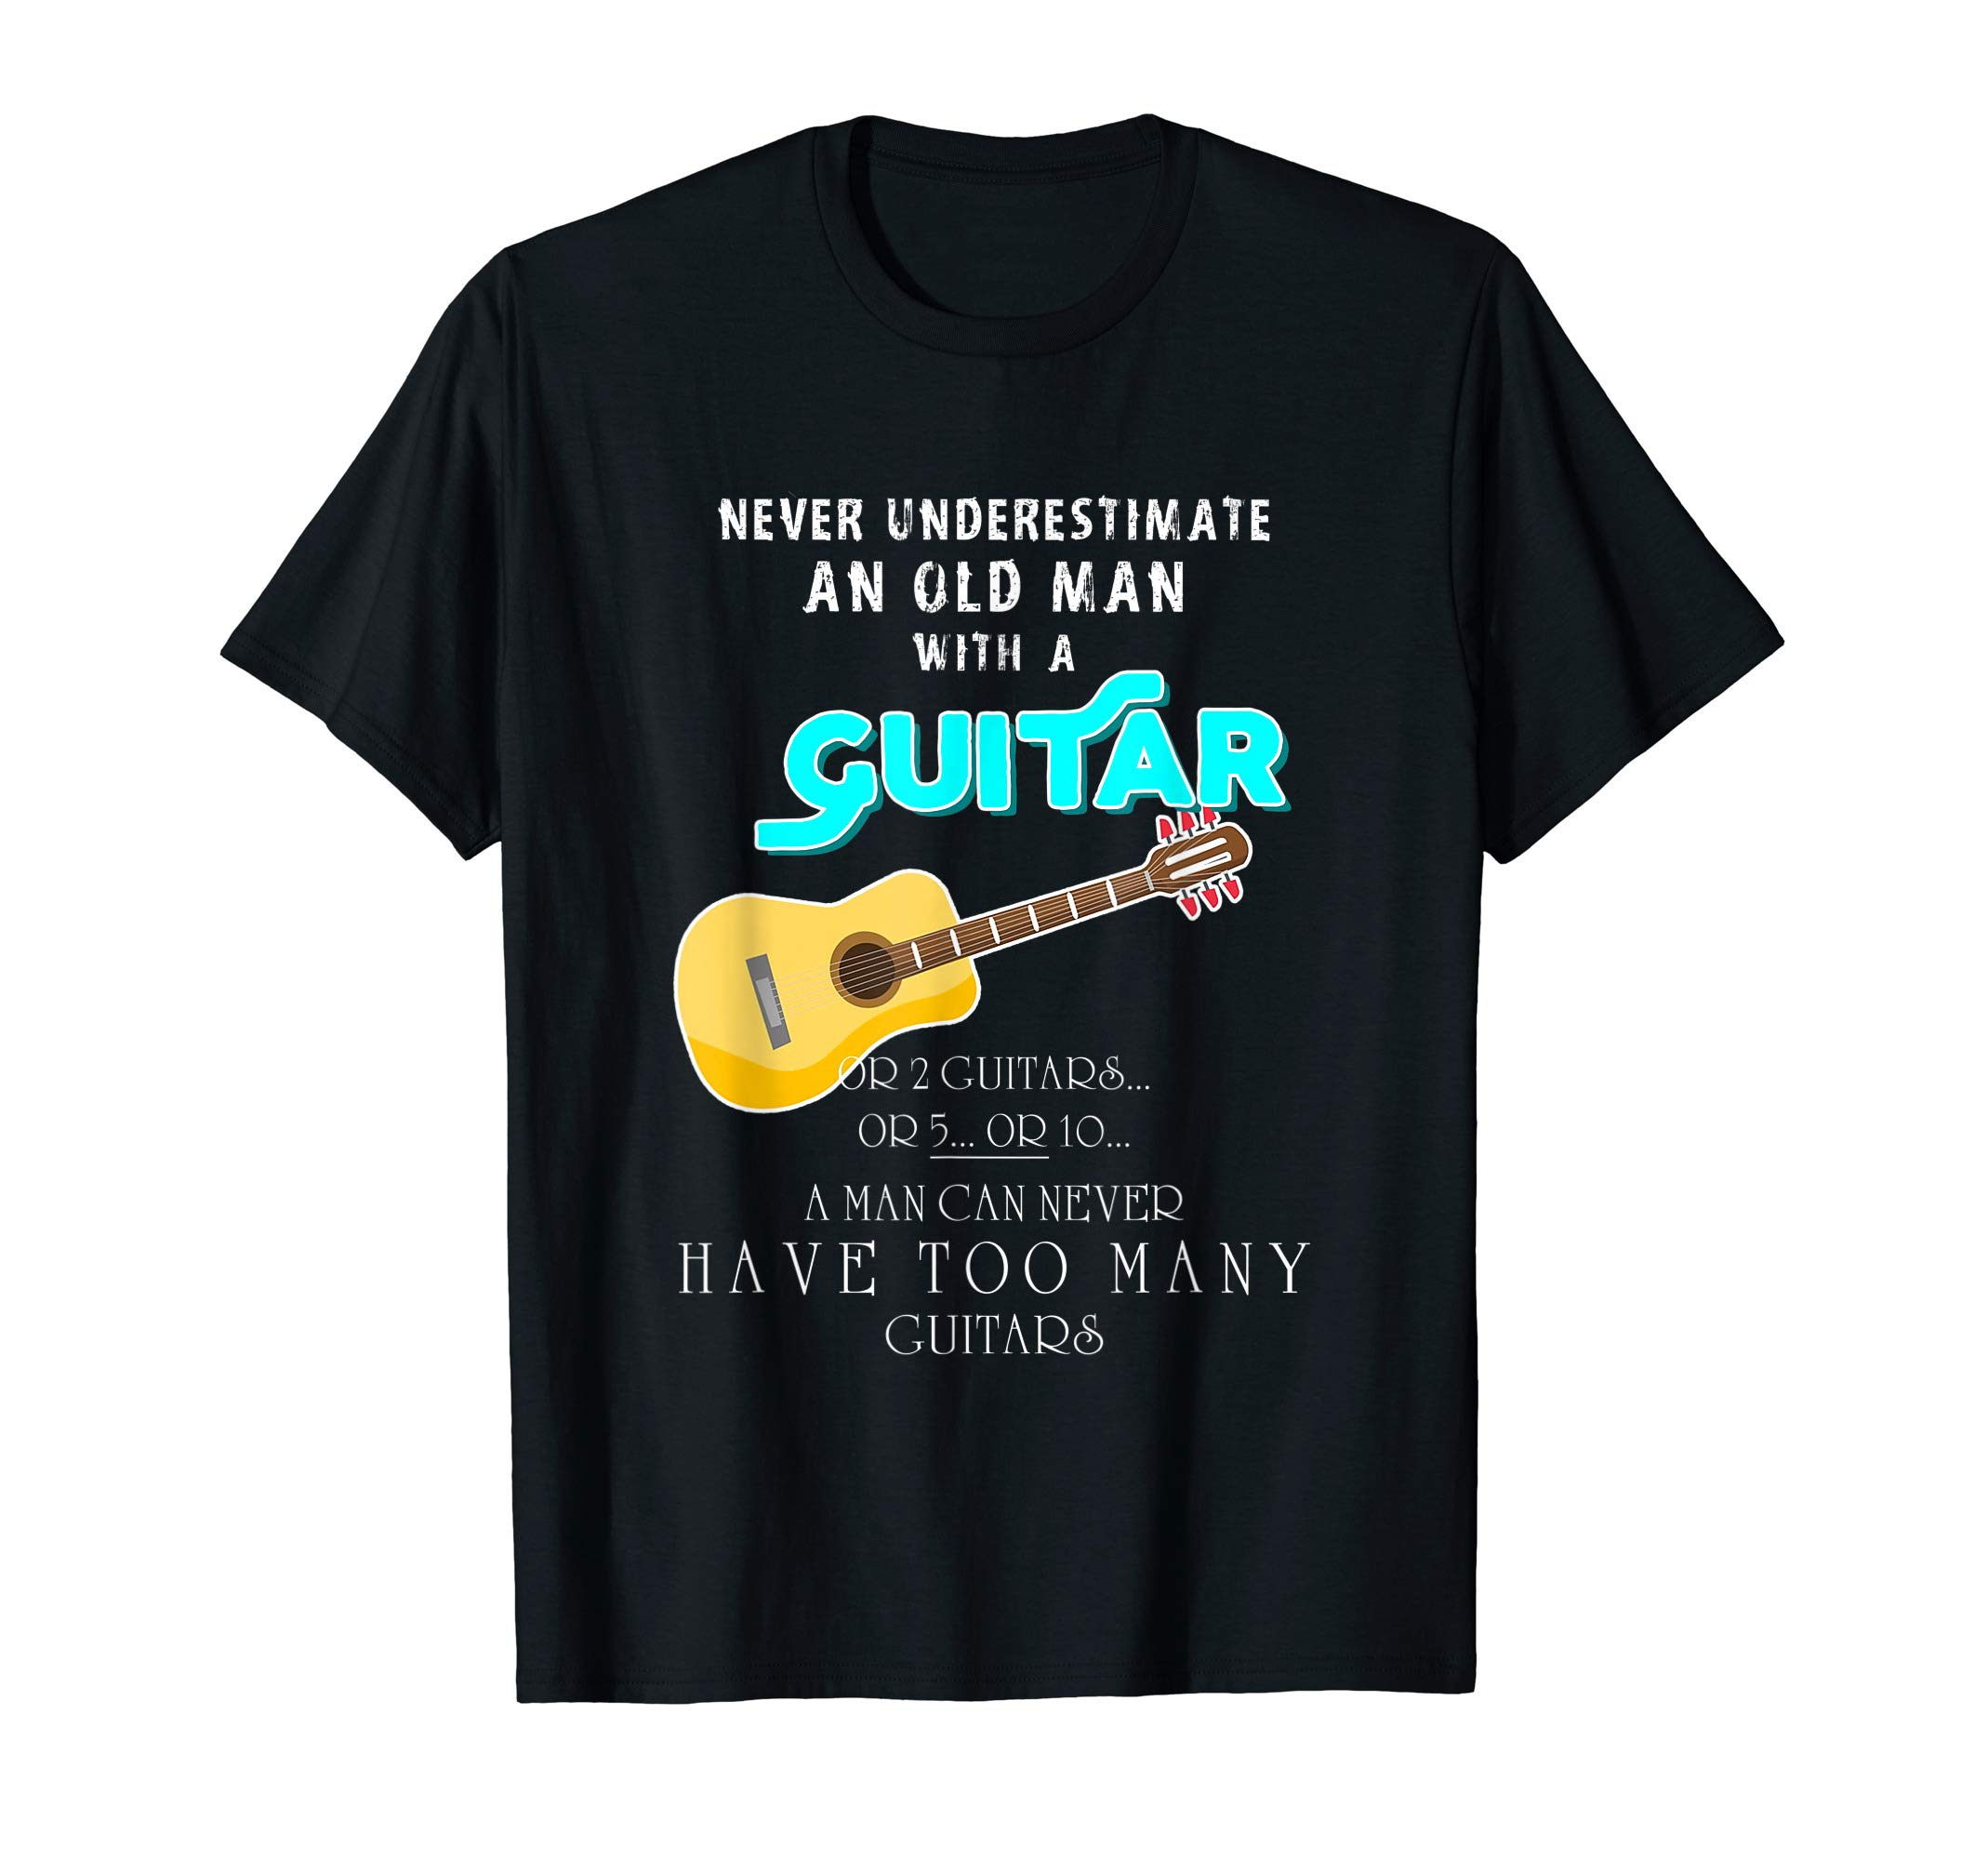 Never underestimate an old man guitar or 2 guitars or 5..or by Amazing Alaska T-Shirt